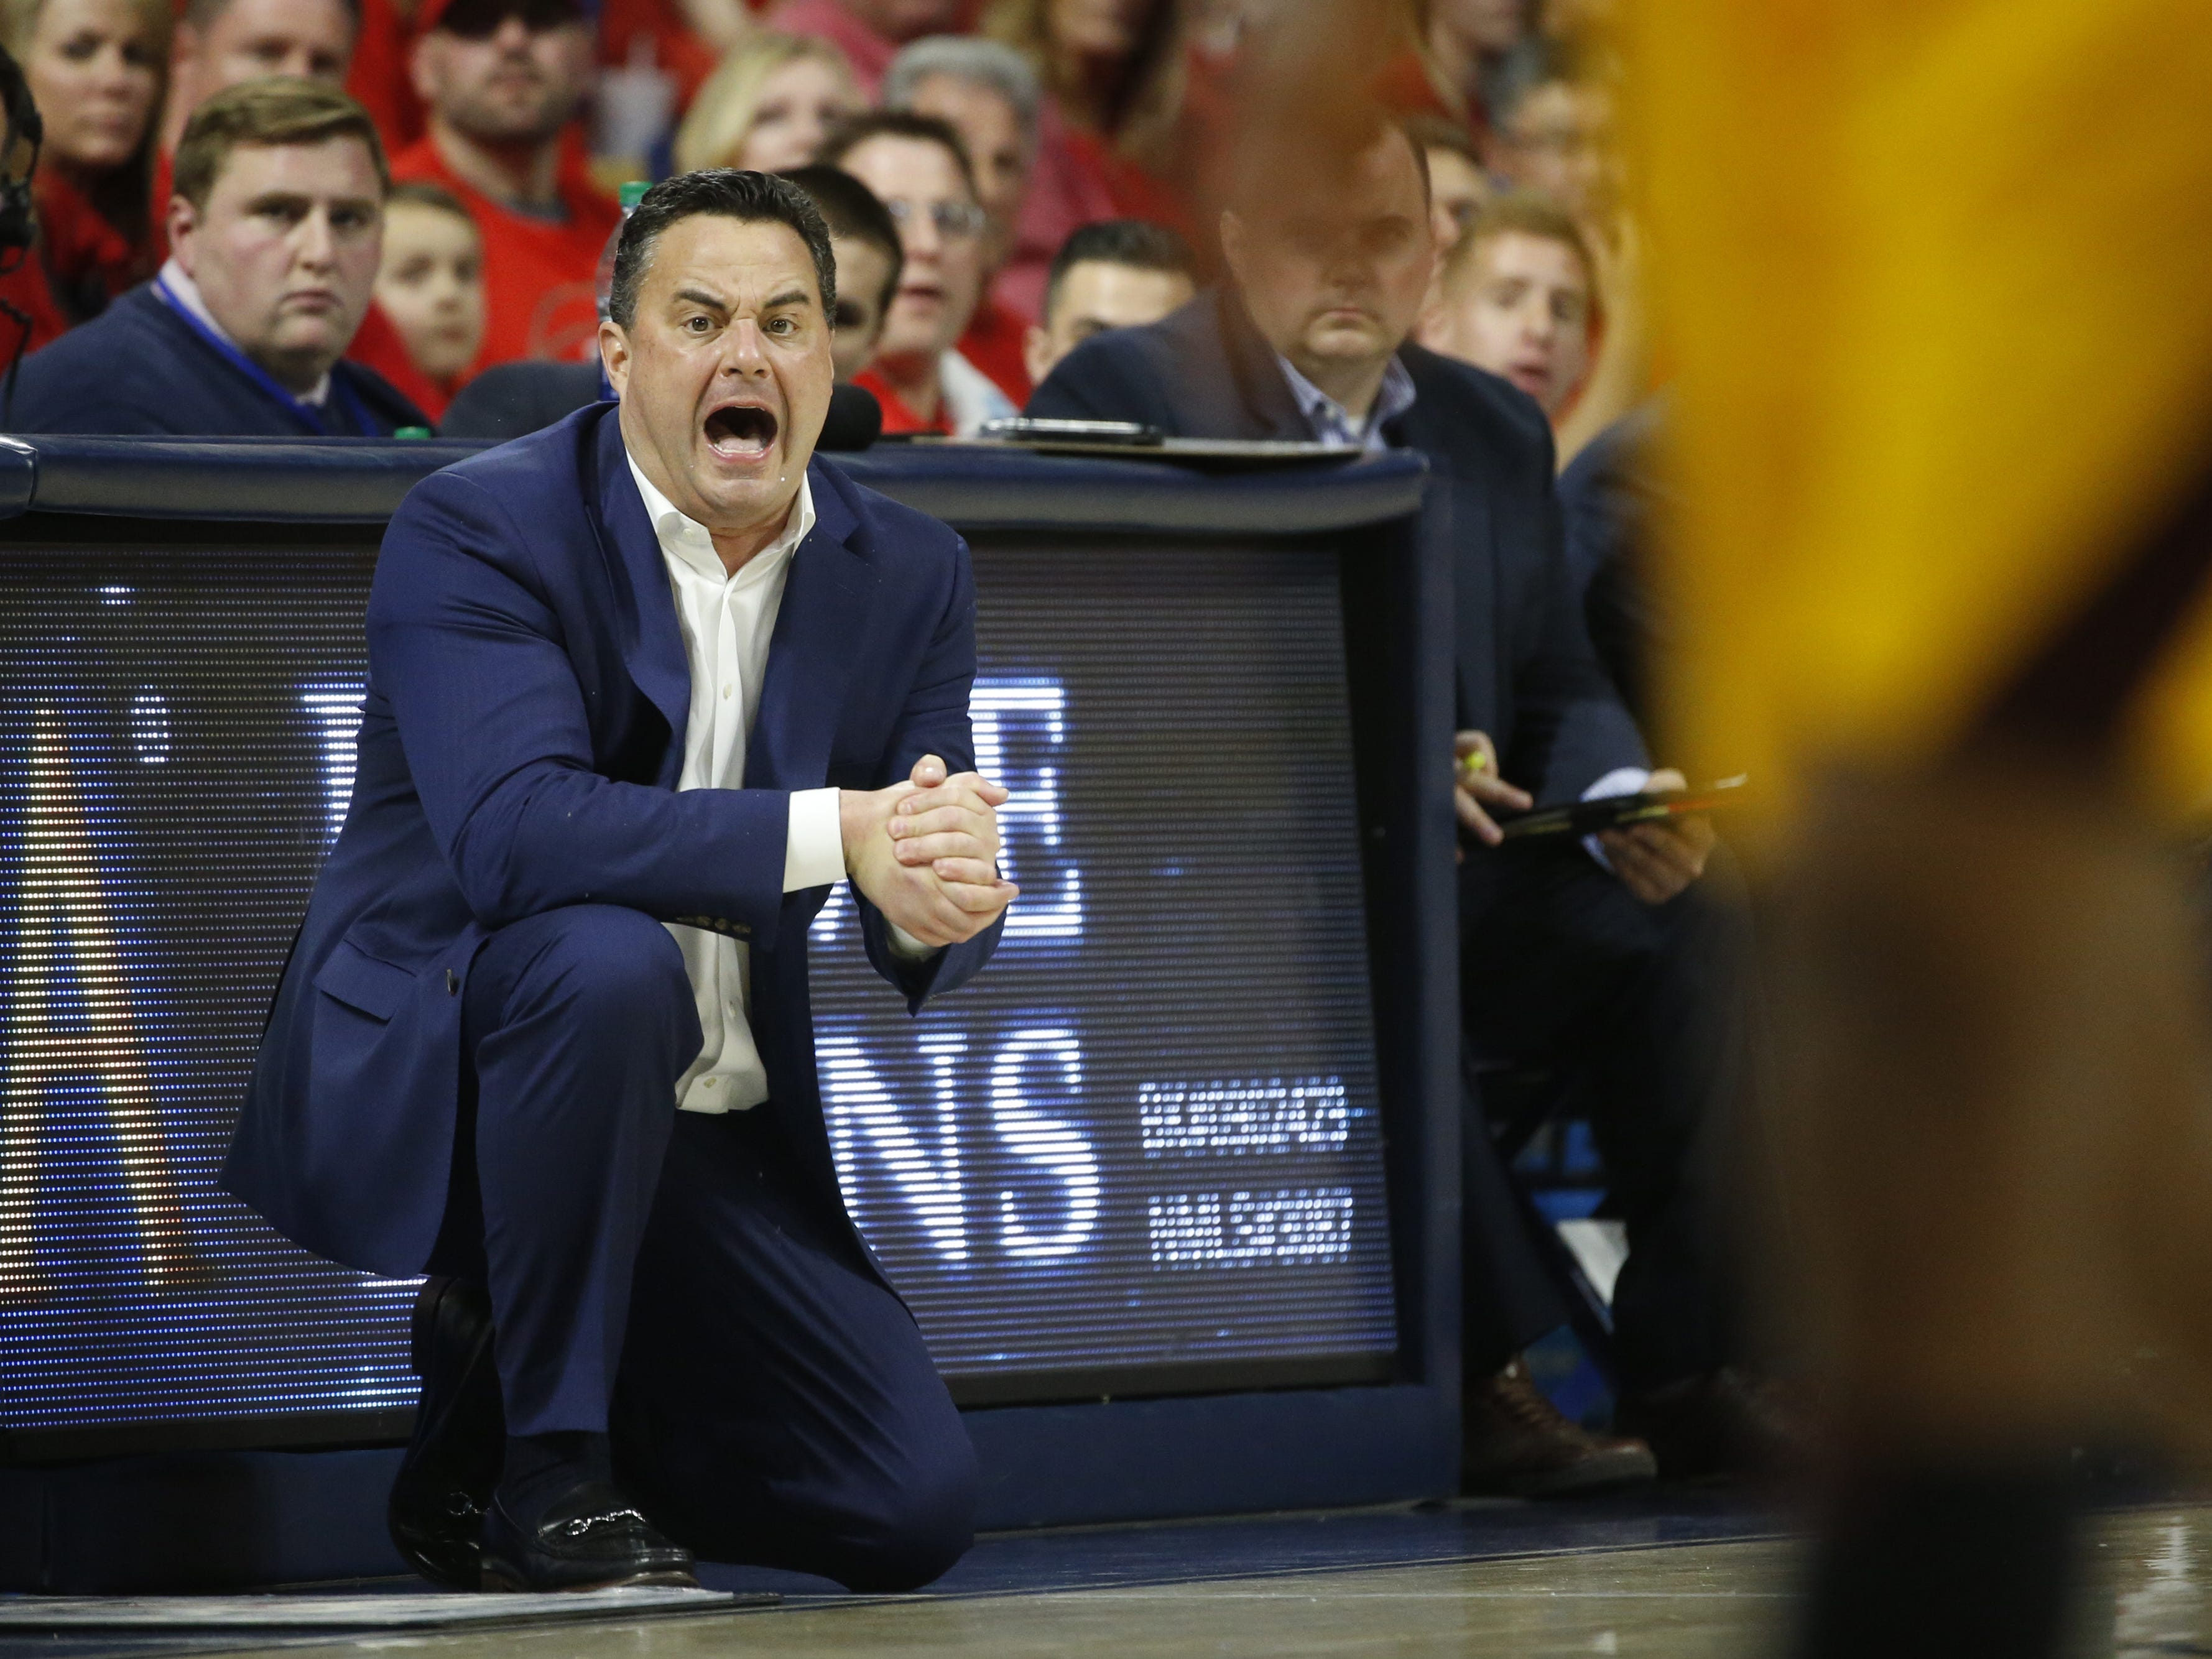 Arizona's head coach Sean Miller yells to his team as they play ASU during the first half at the McKale Memorial Center in Tucson, Ariz. on March 9, 2019.